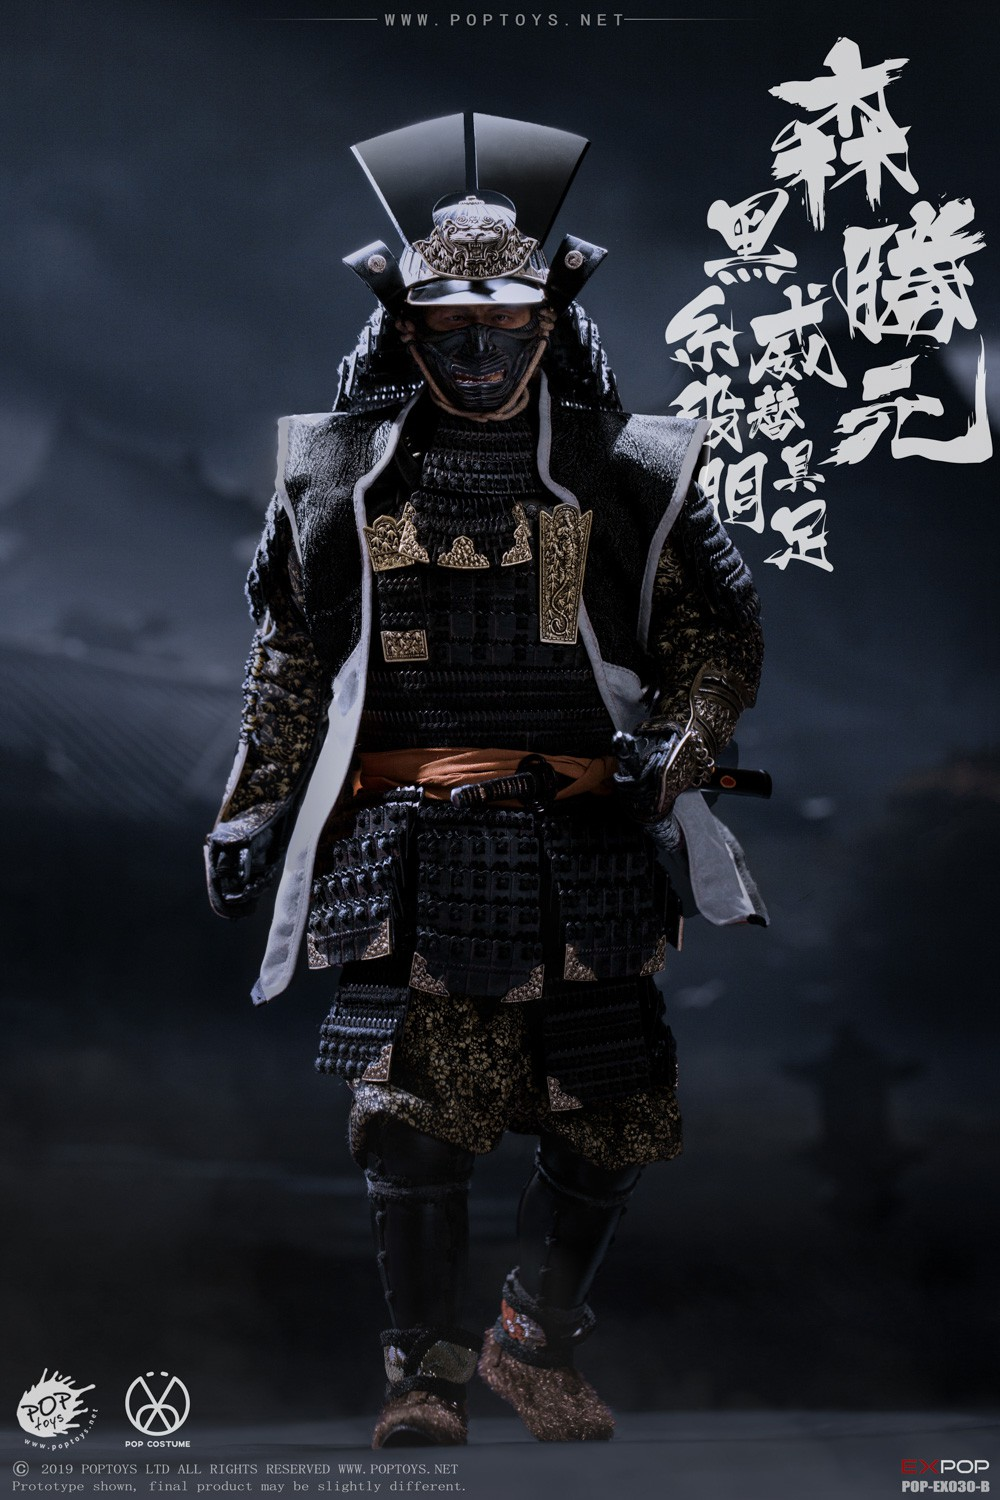 japanese - NEW PRODUCT: PopToys: 1/6 Benevolent Samurai EX30 Standard Edition/Deluxe Edition/Petition Edition [A piece of material 100% alloy] 16330512